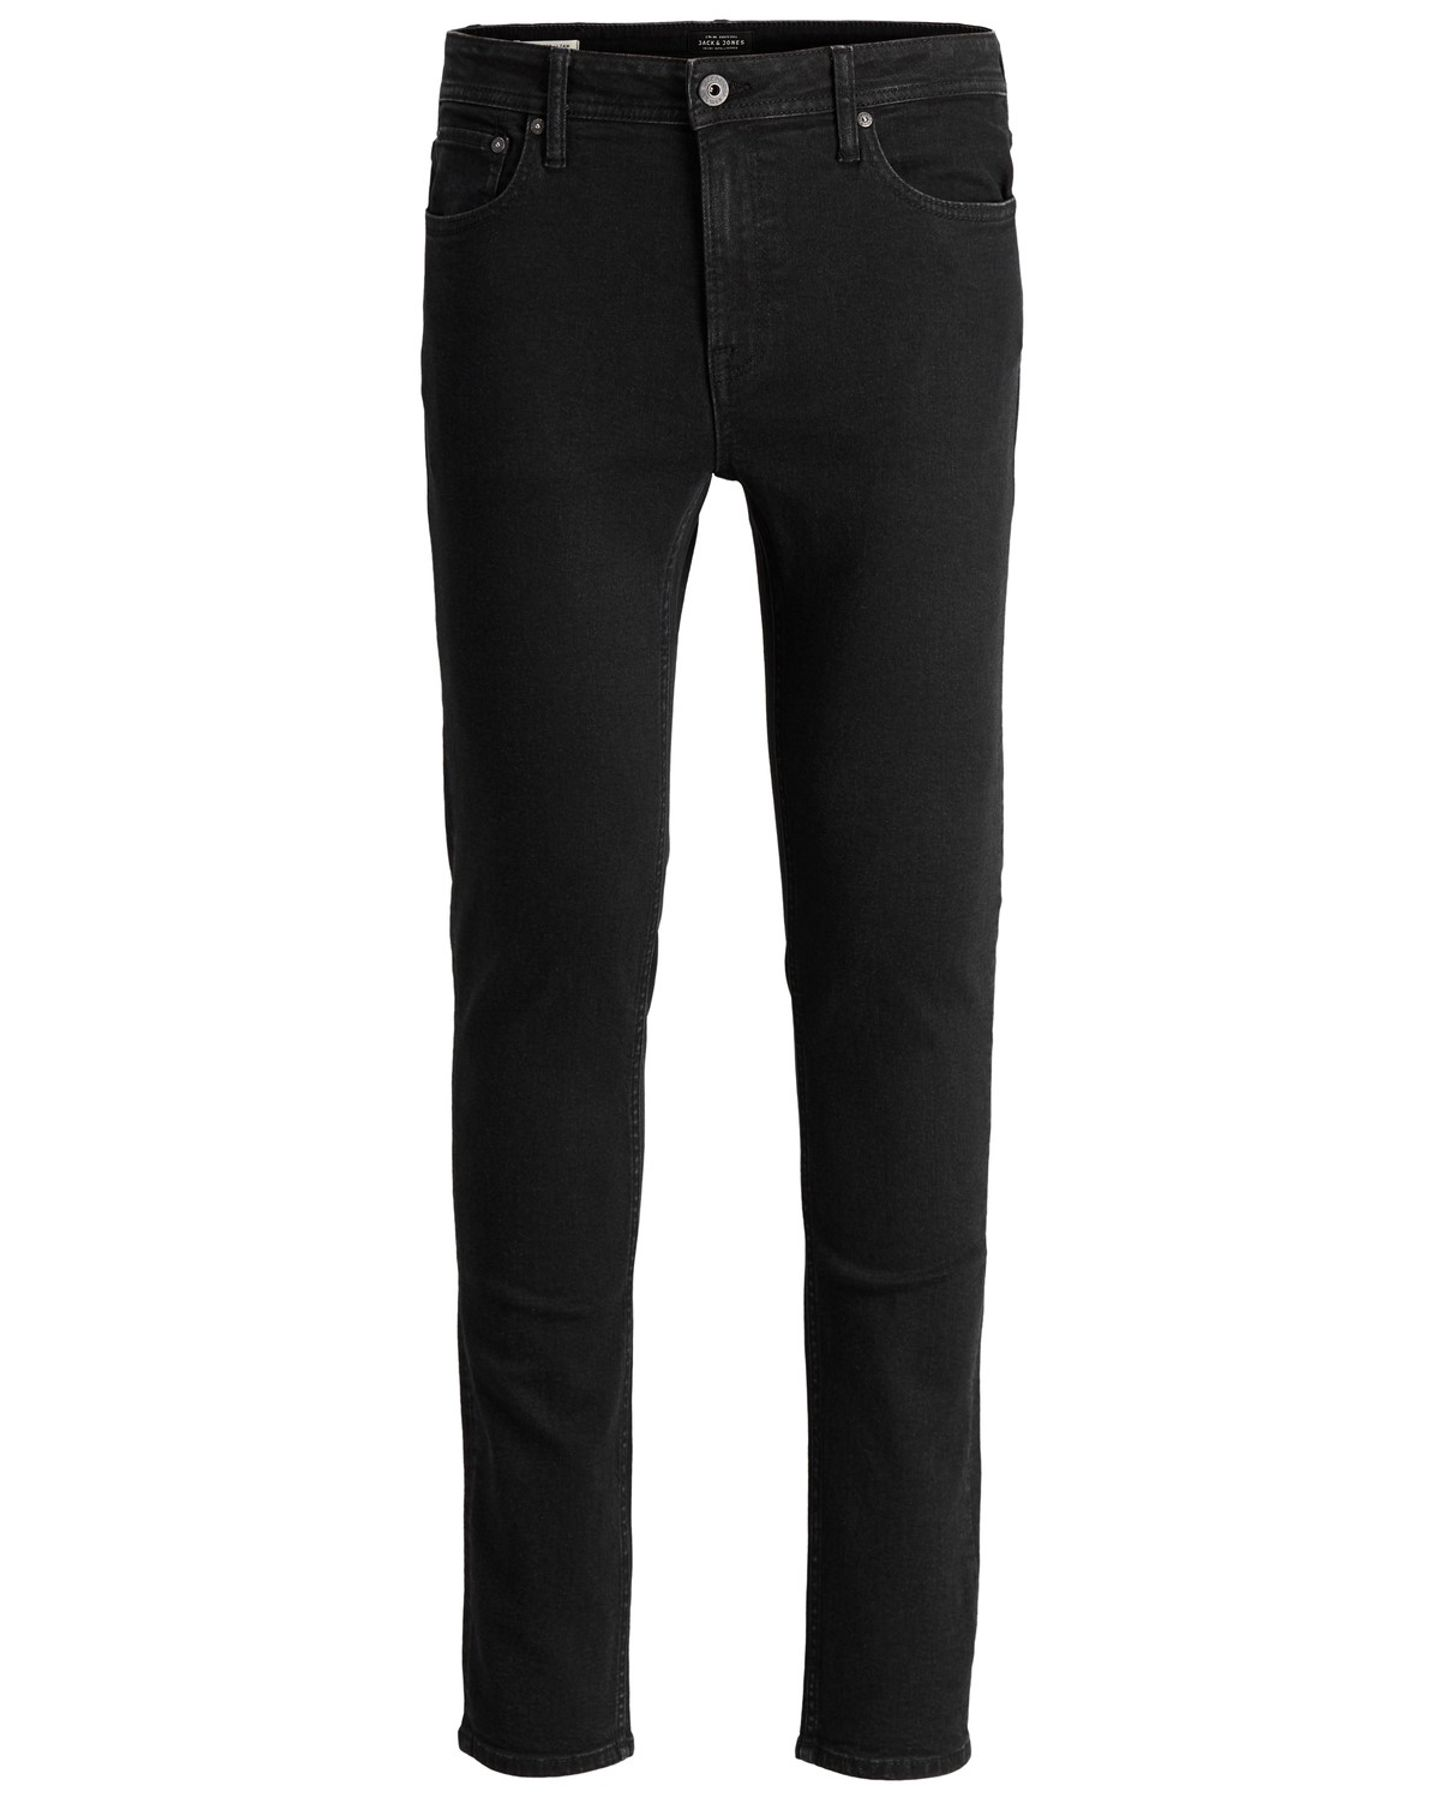 Jack & Jones - Herren Jeans, Slim Fit (Art. 12141622) – Bild 1